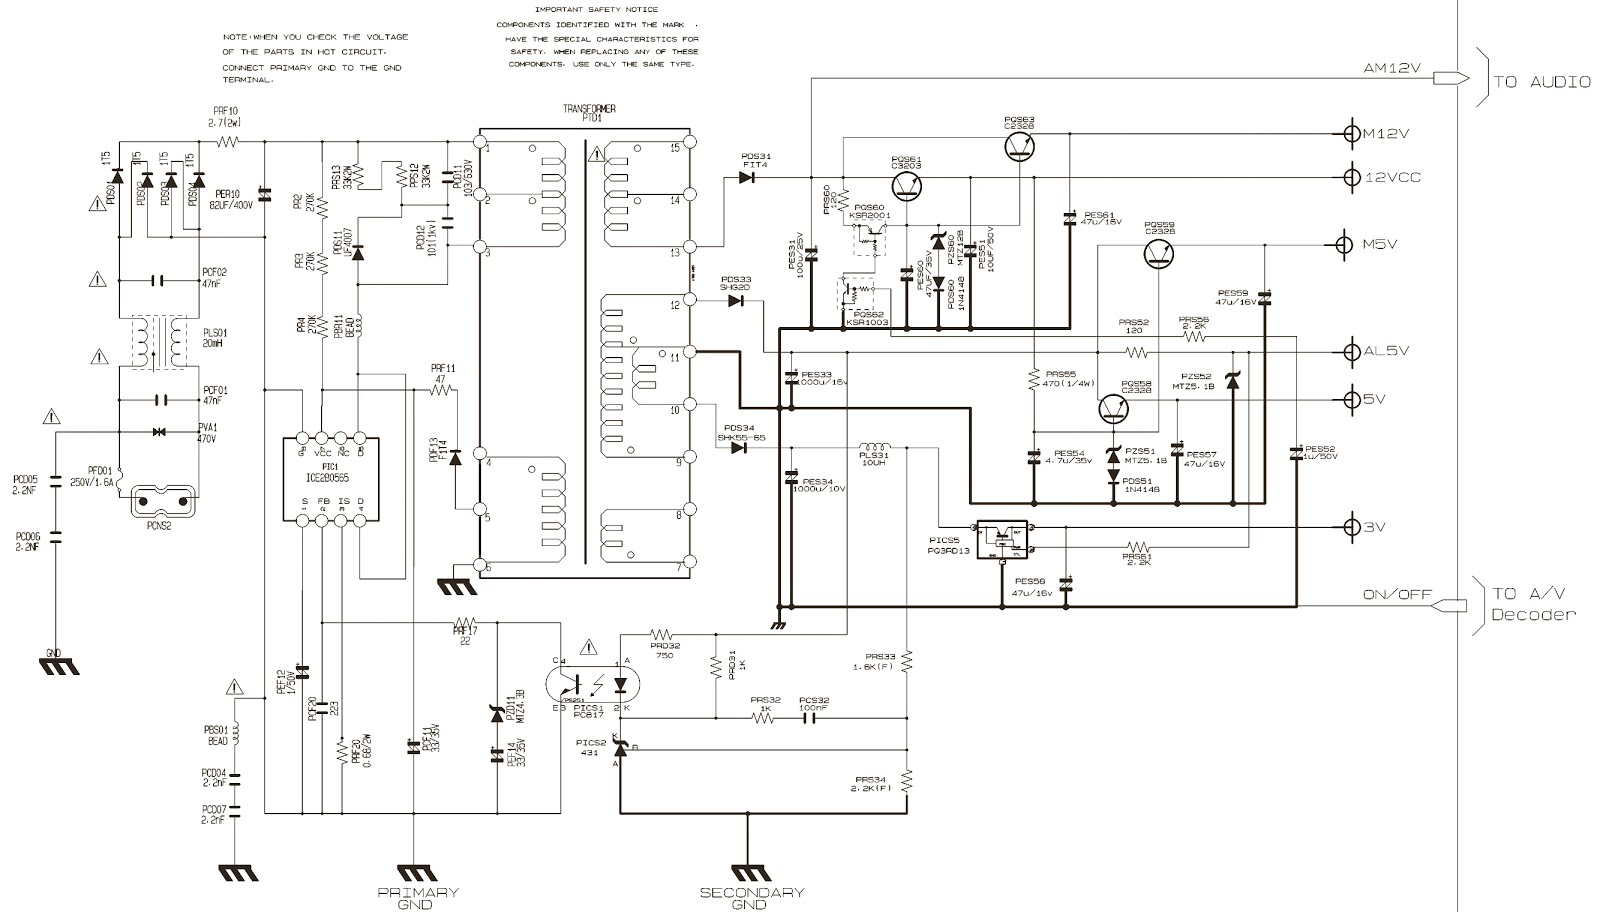 samsung dvd p244 exploded view smps circuit diagram. Black Bedroom Furniture Sets. Home Design Ideas